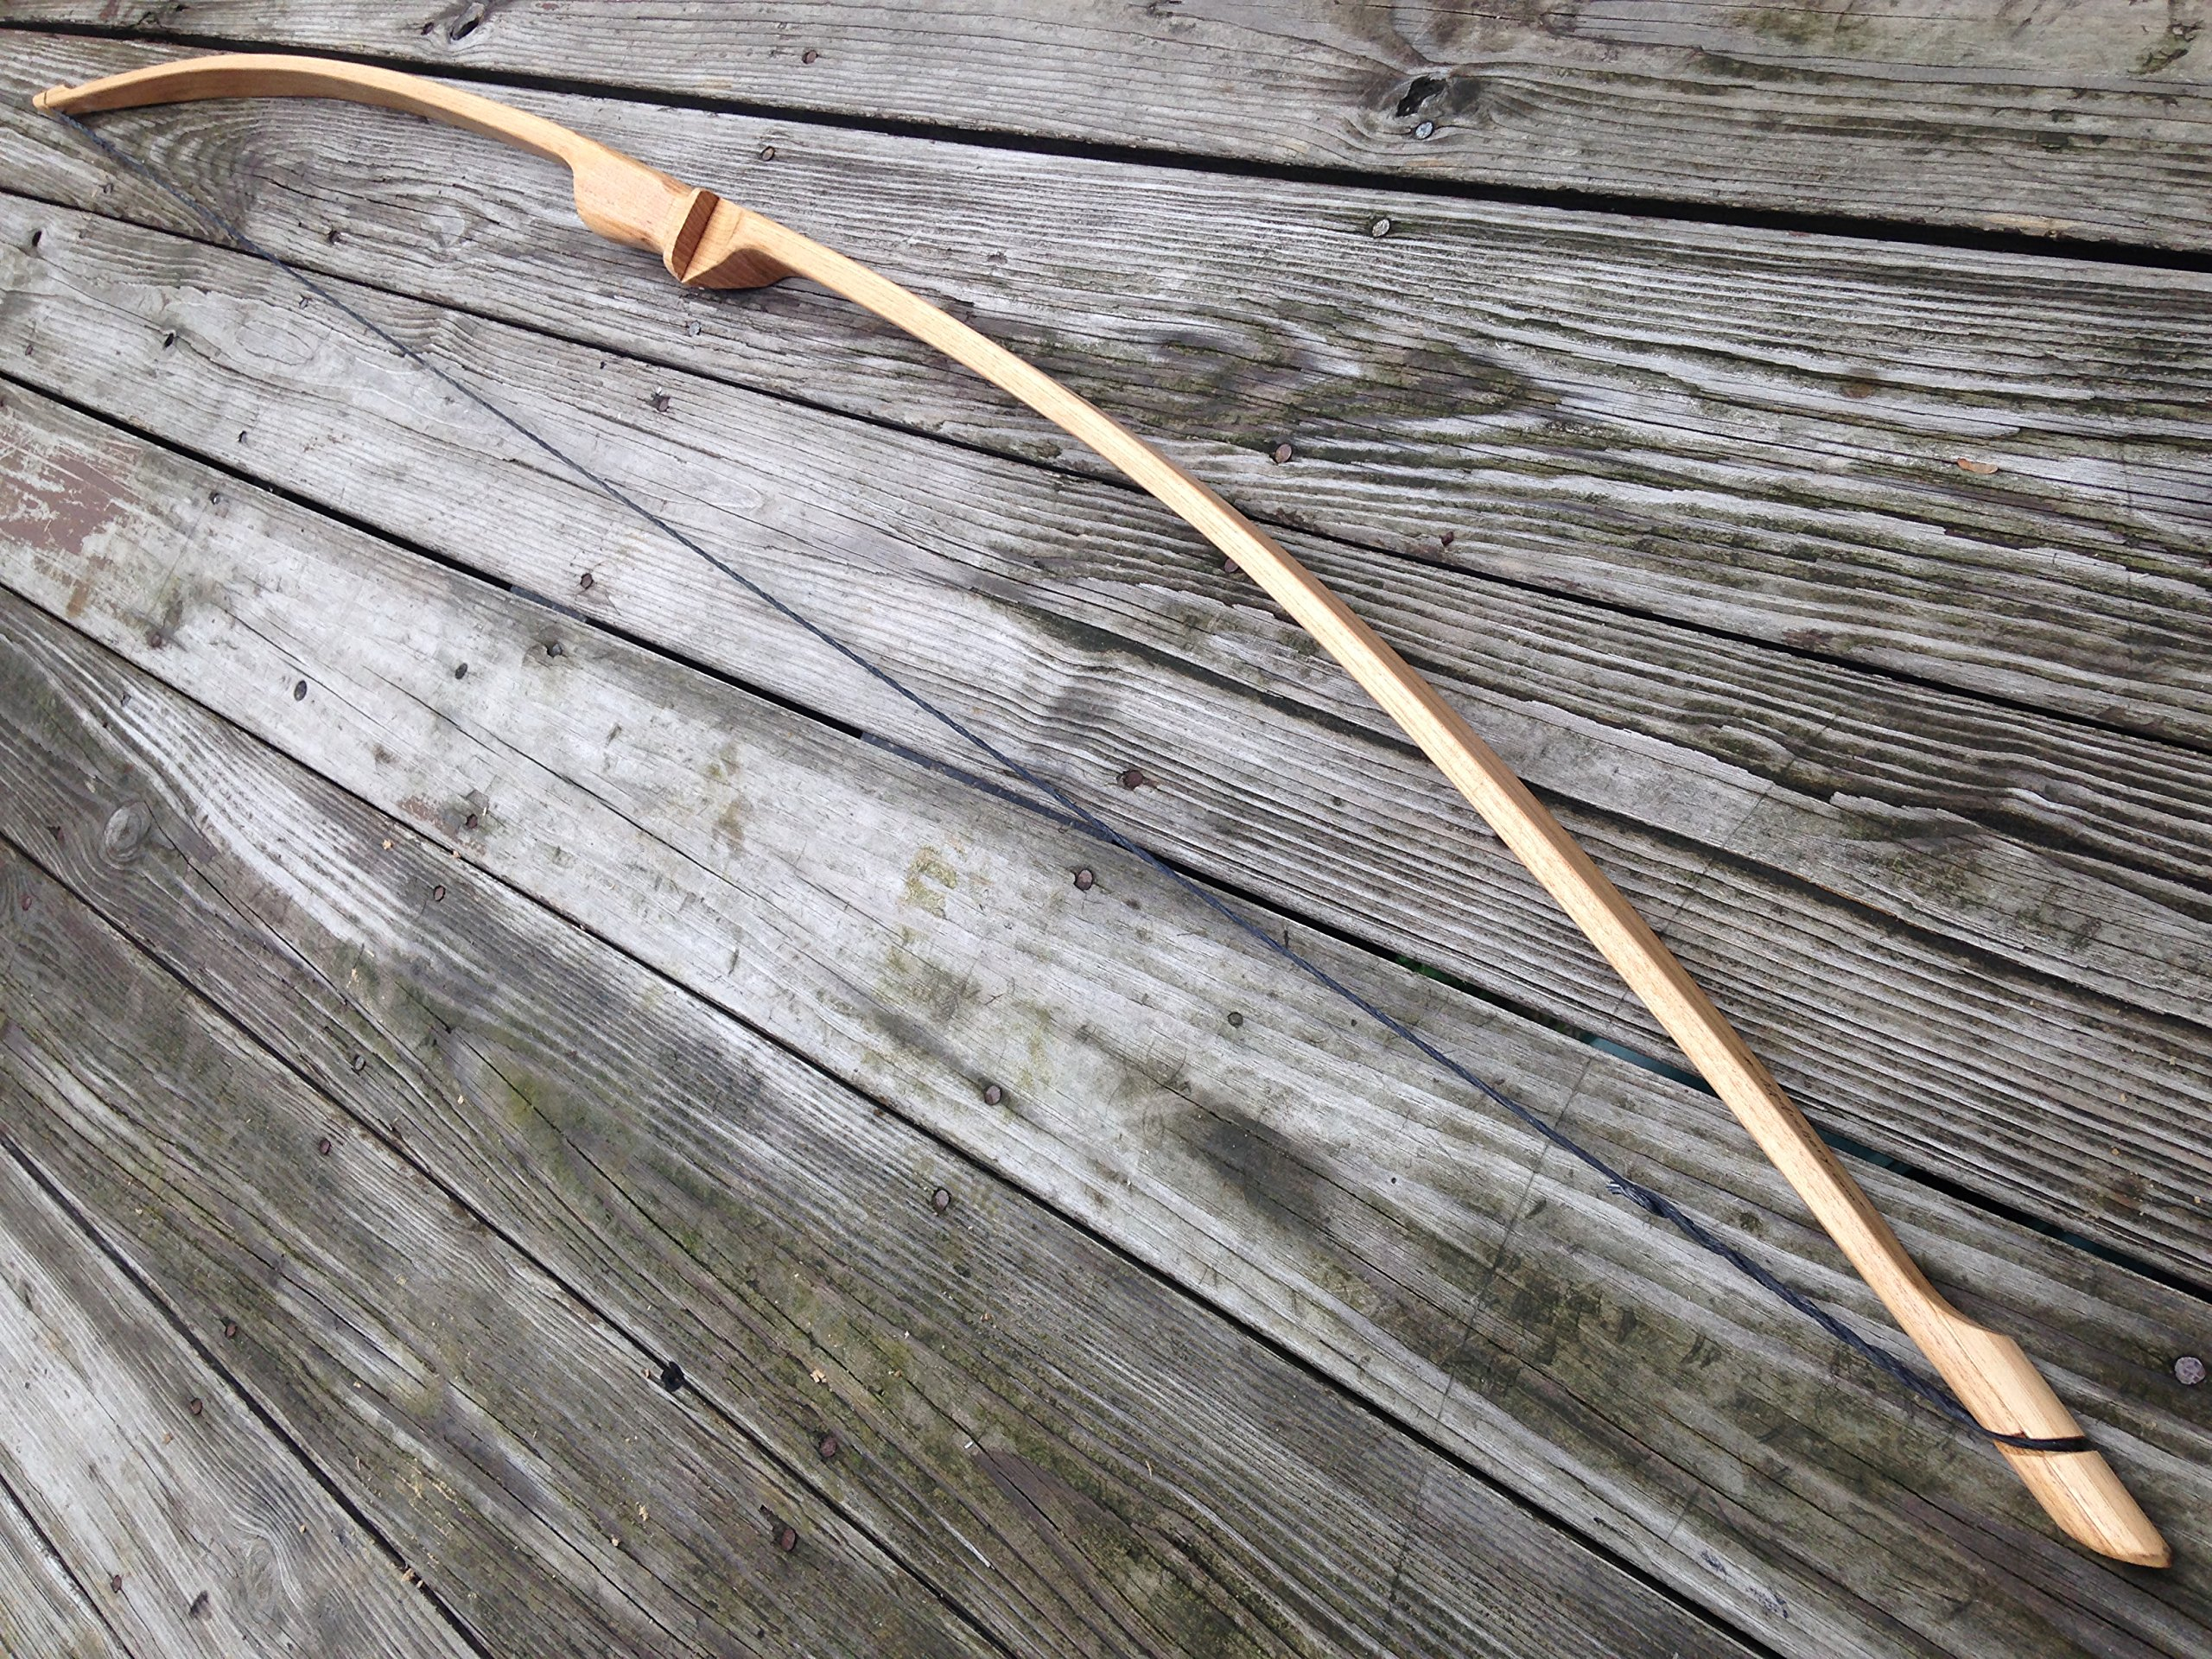 45/50lb 64'' Traditional Hickory Longbow! Competition or Hunting Bow! Wood Archery! by RingingRocksArchery.com